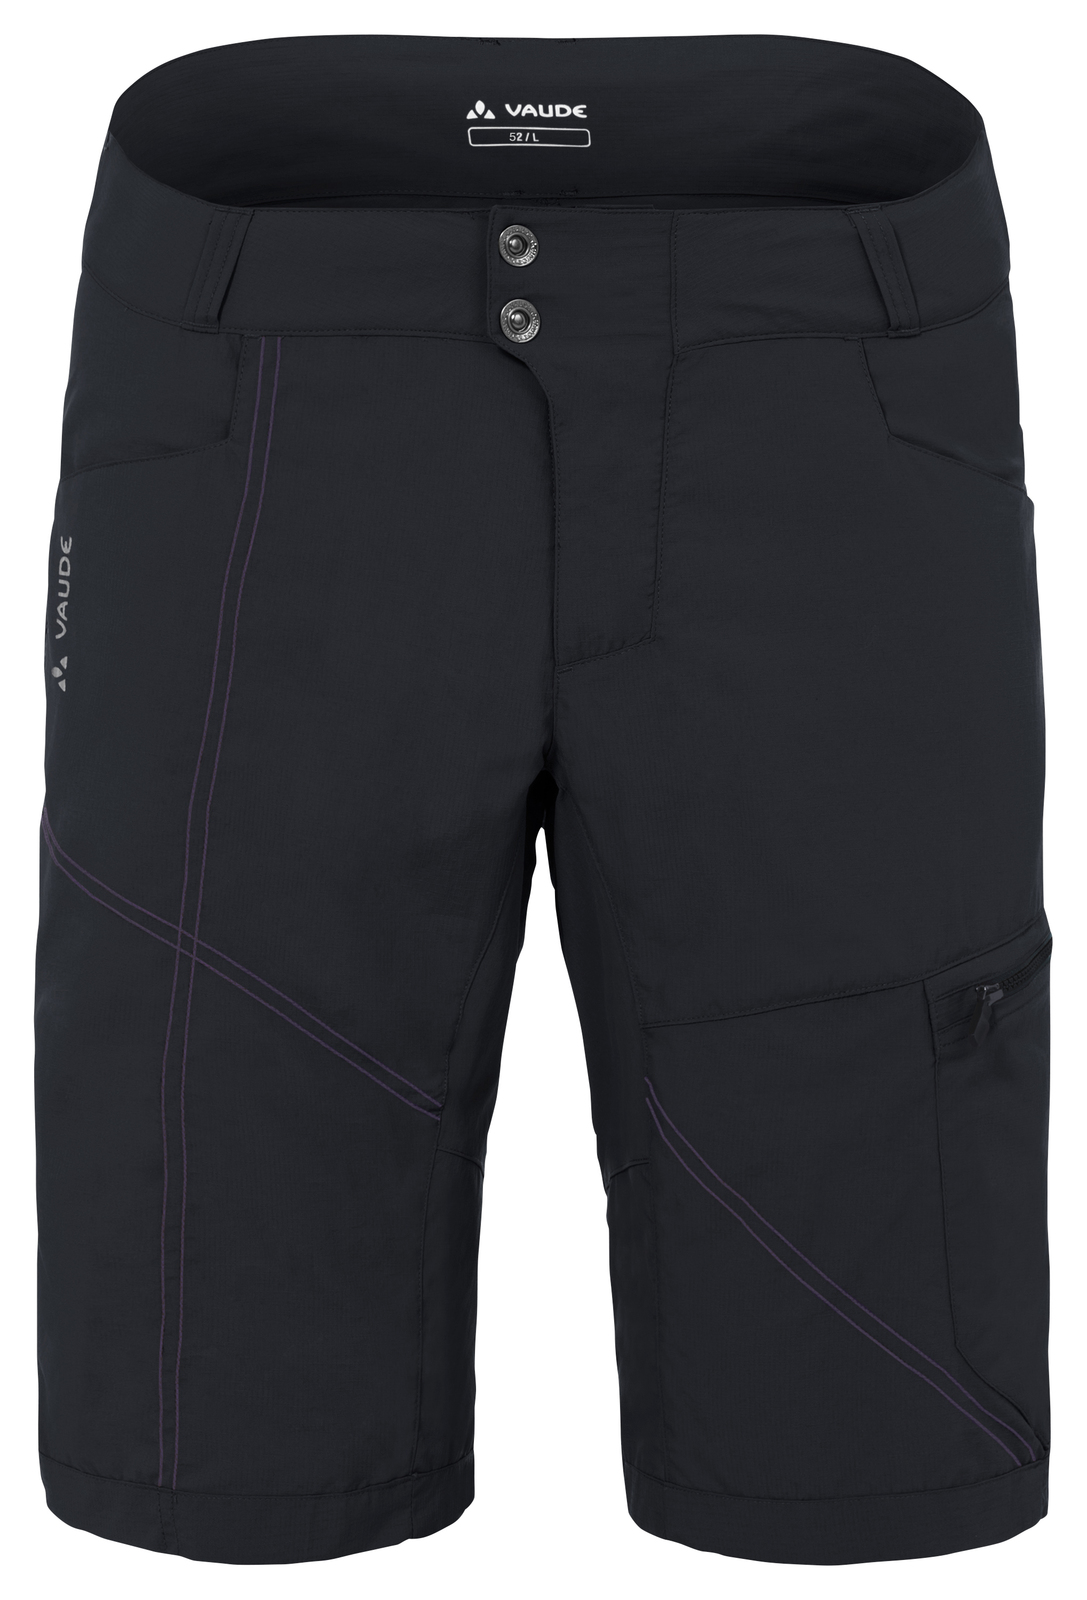 VAUDE Men´s Tamaro Shorts black Größe L - schneider-sports